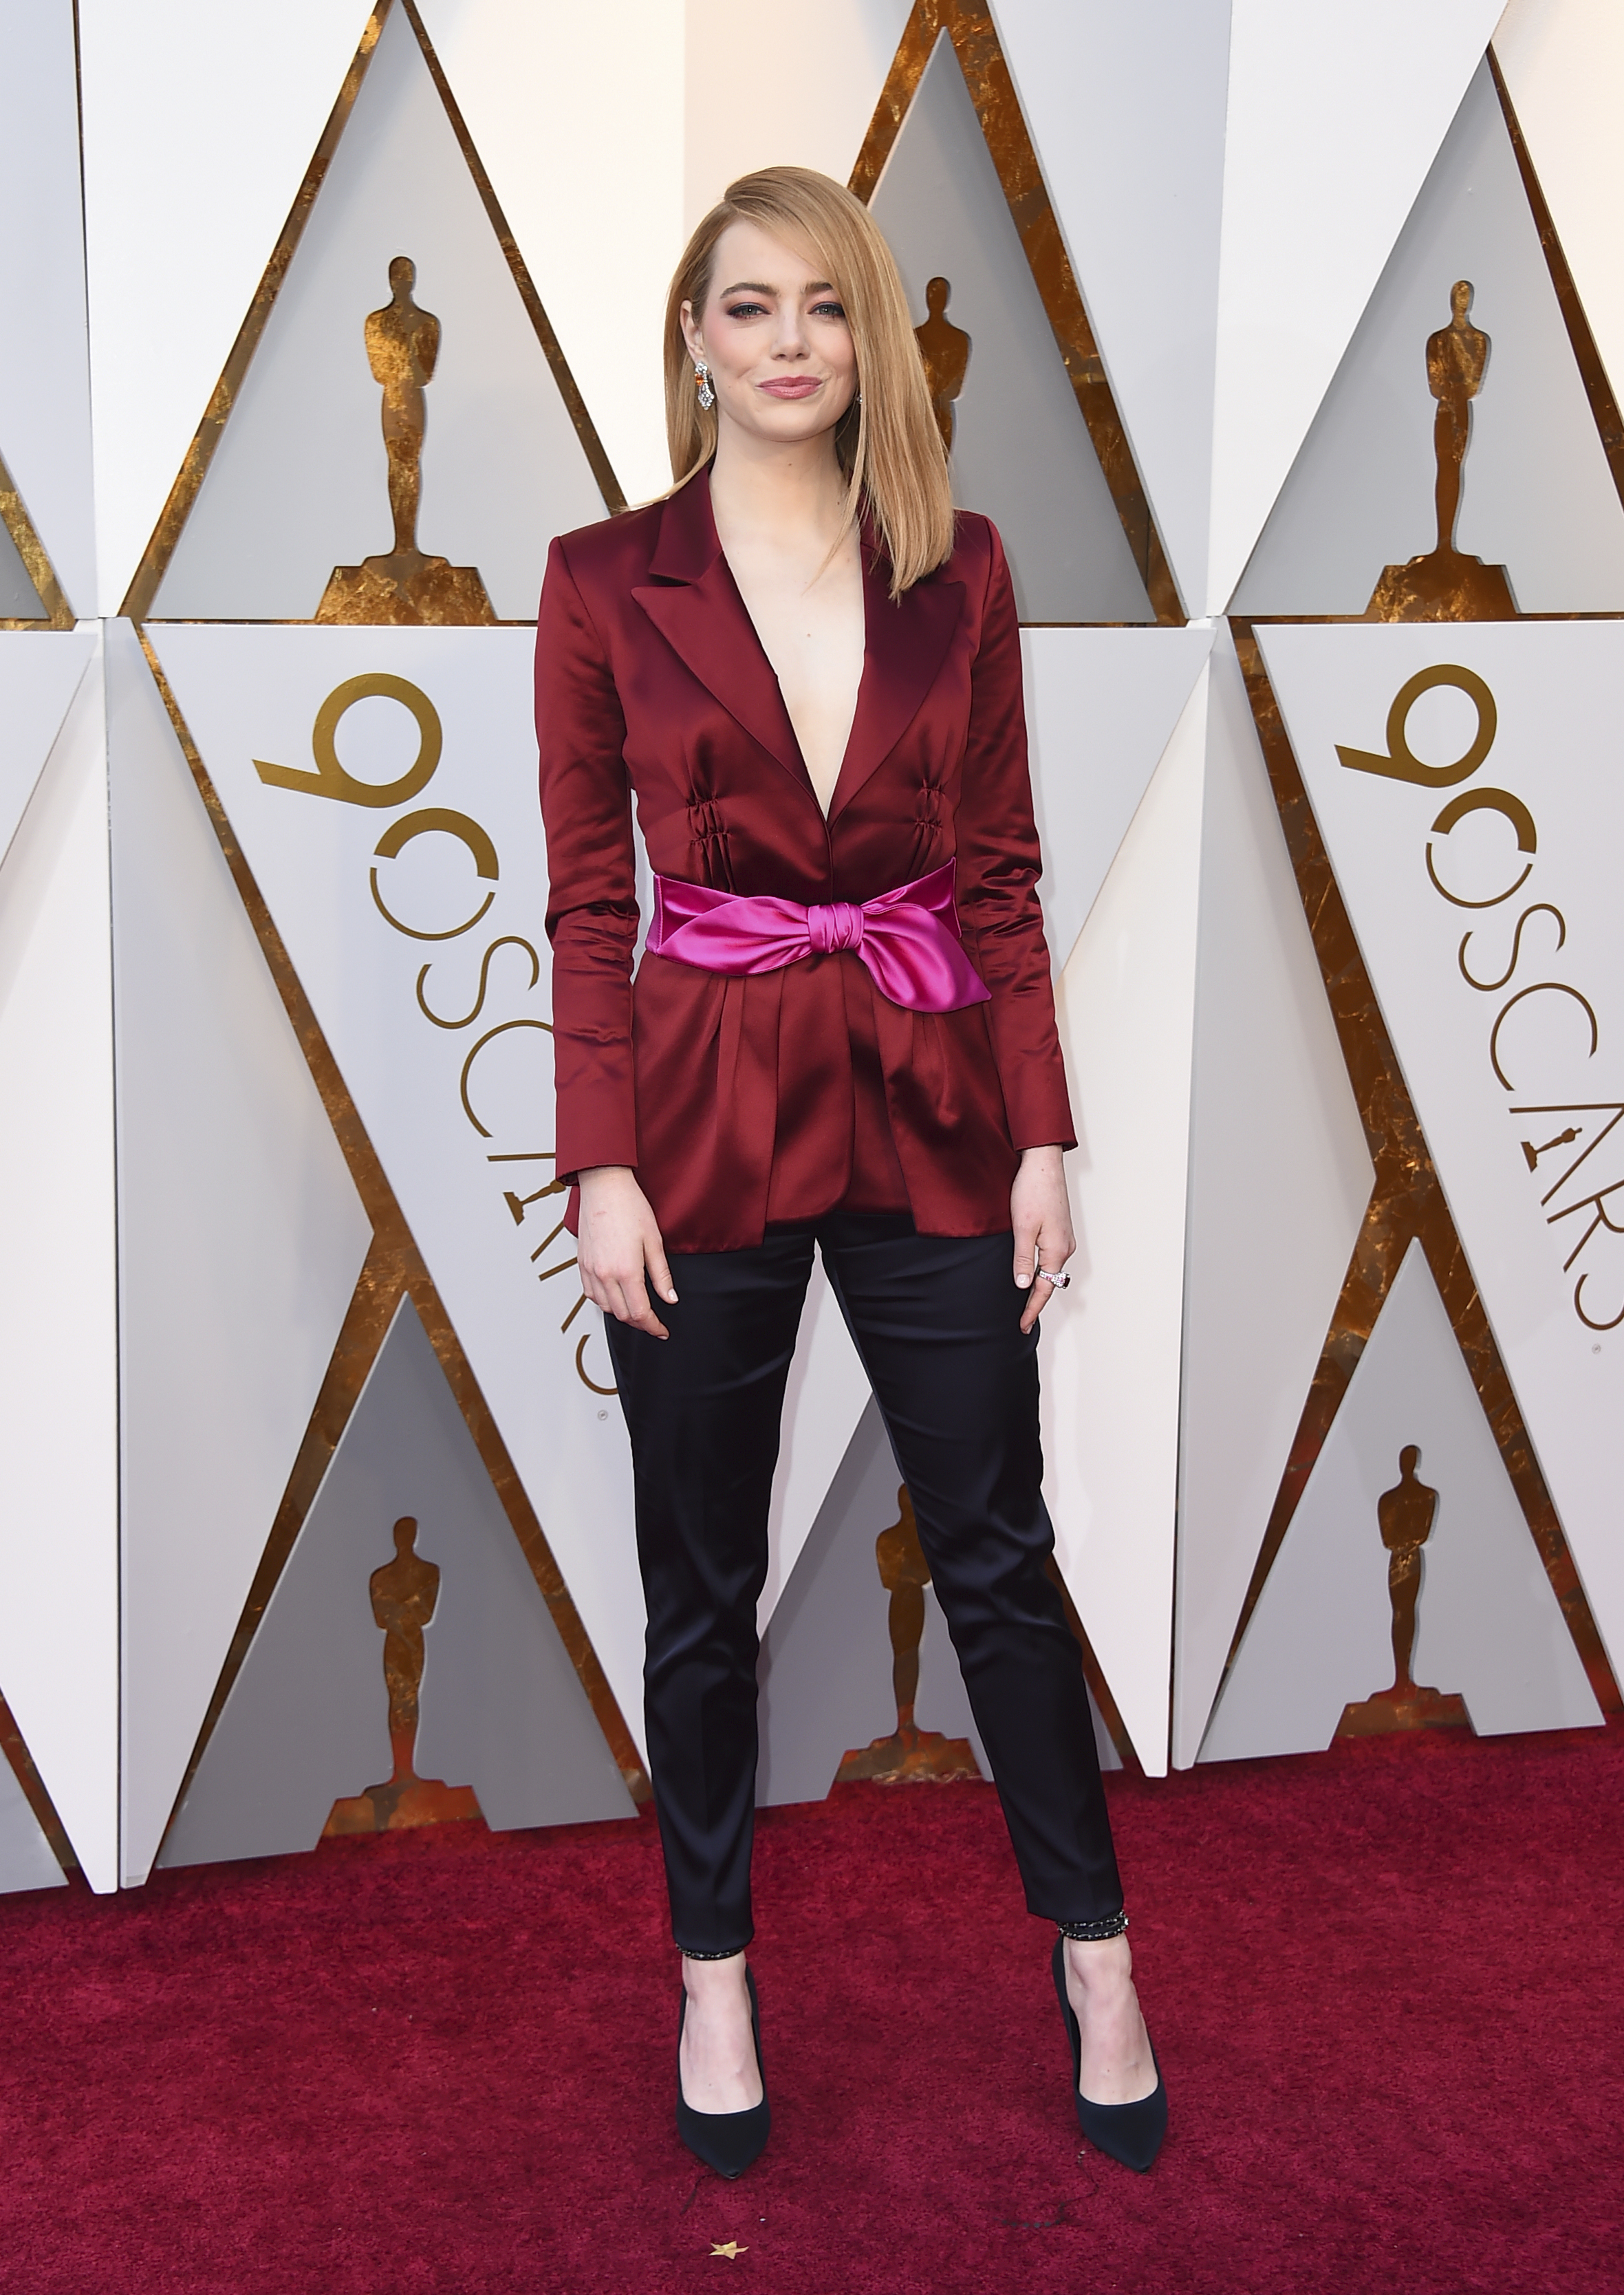 <div class='meta'><div class='origin-logo' data-origin='none'></div><span class='caption-text' data-credit='Jordan Strauss/Invision/AP'>Last year's Best Actress winner Emma Stone arrives at the Oscars on Sunday, March 4, 2018, at the Dolby Theatre in Los Angeles.</span></div>